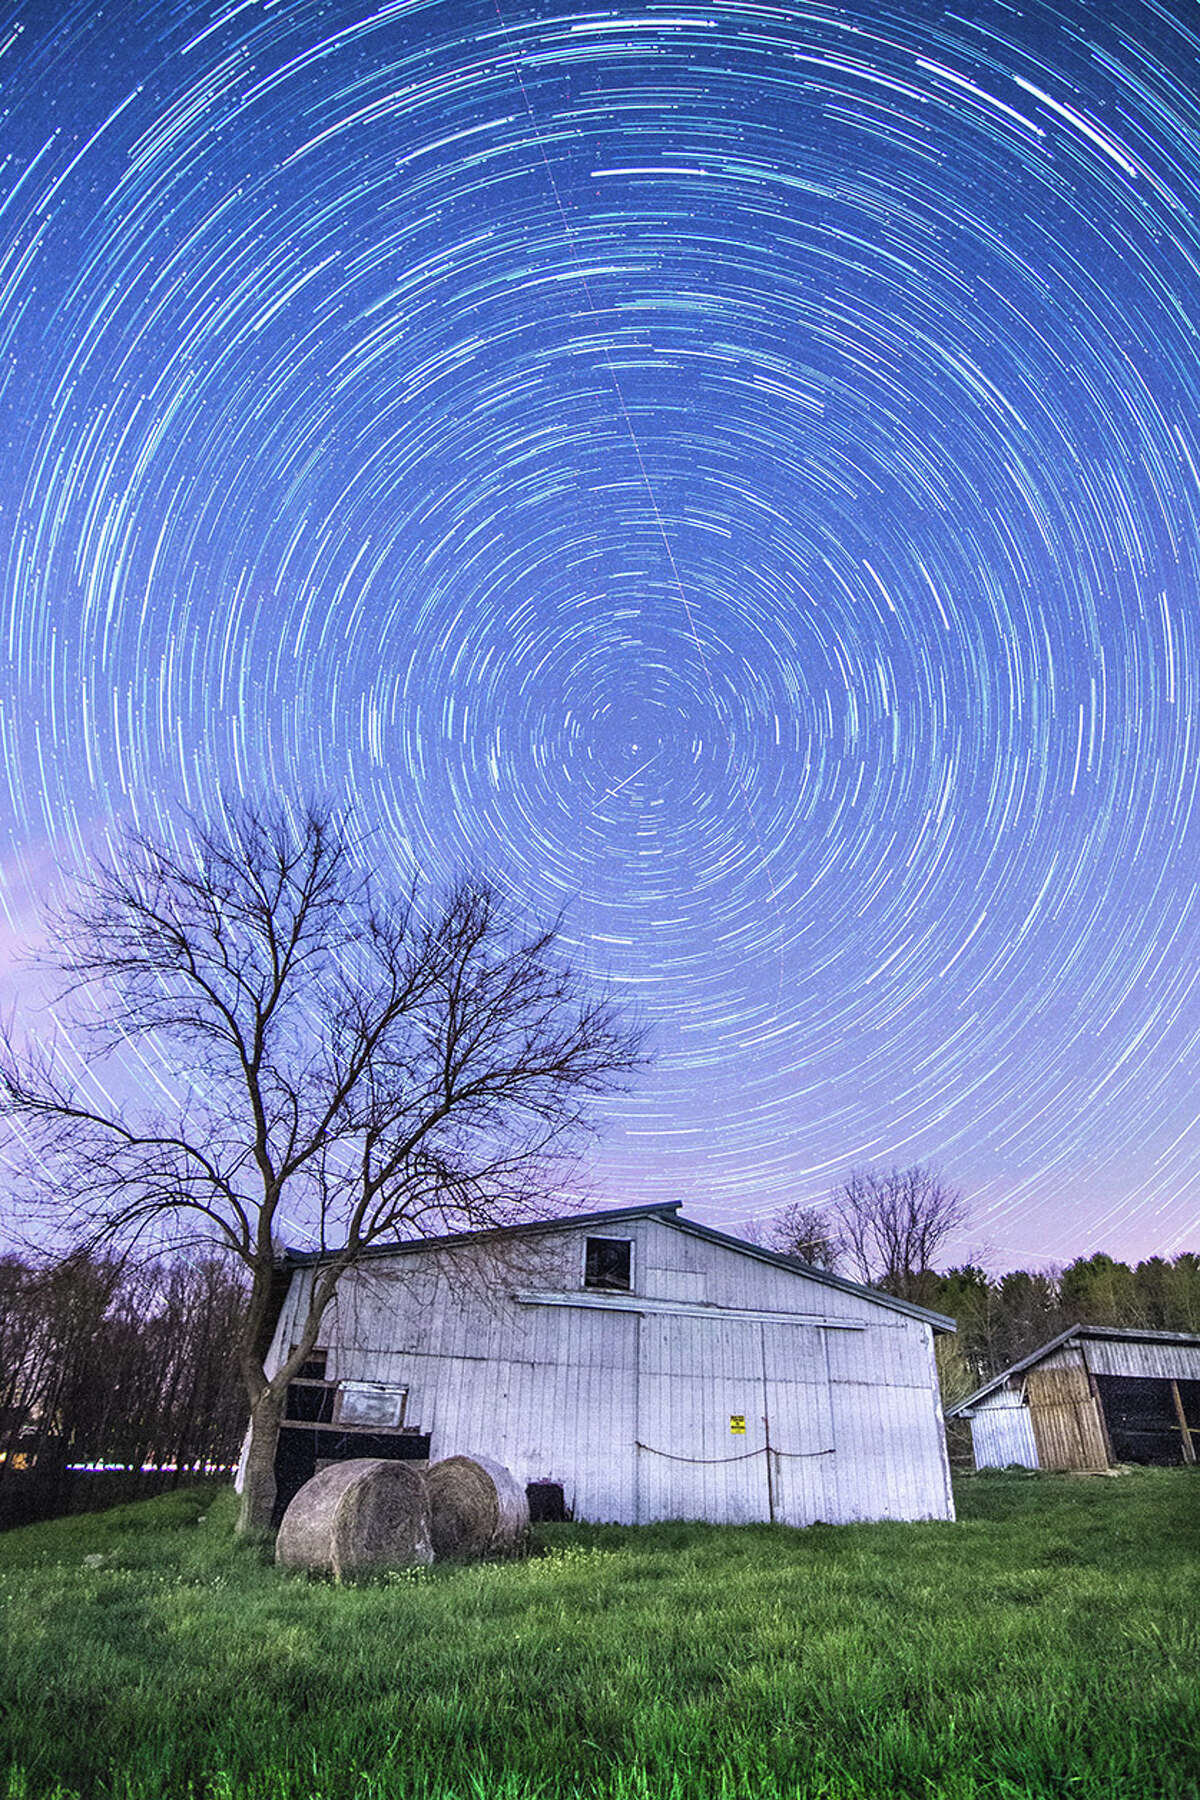 The Gunnery in Washington has announced that Kenyon Kay of the class of 2018 has received second place overall in the Natural Gallery for the 2016 American Association of Physics Teachers (AAPT) High School Physics Photo Contest. Kenyon was recognized for his photo